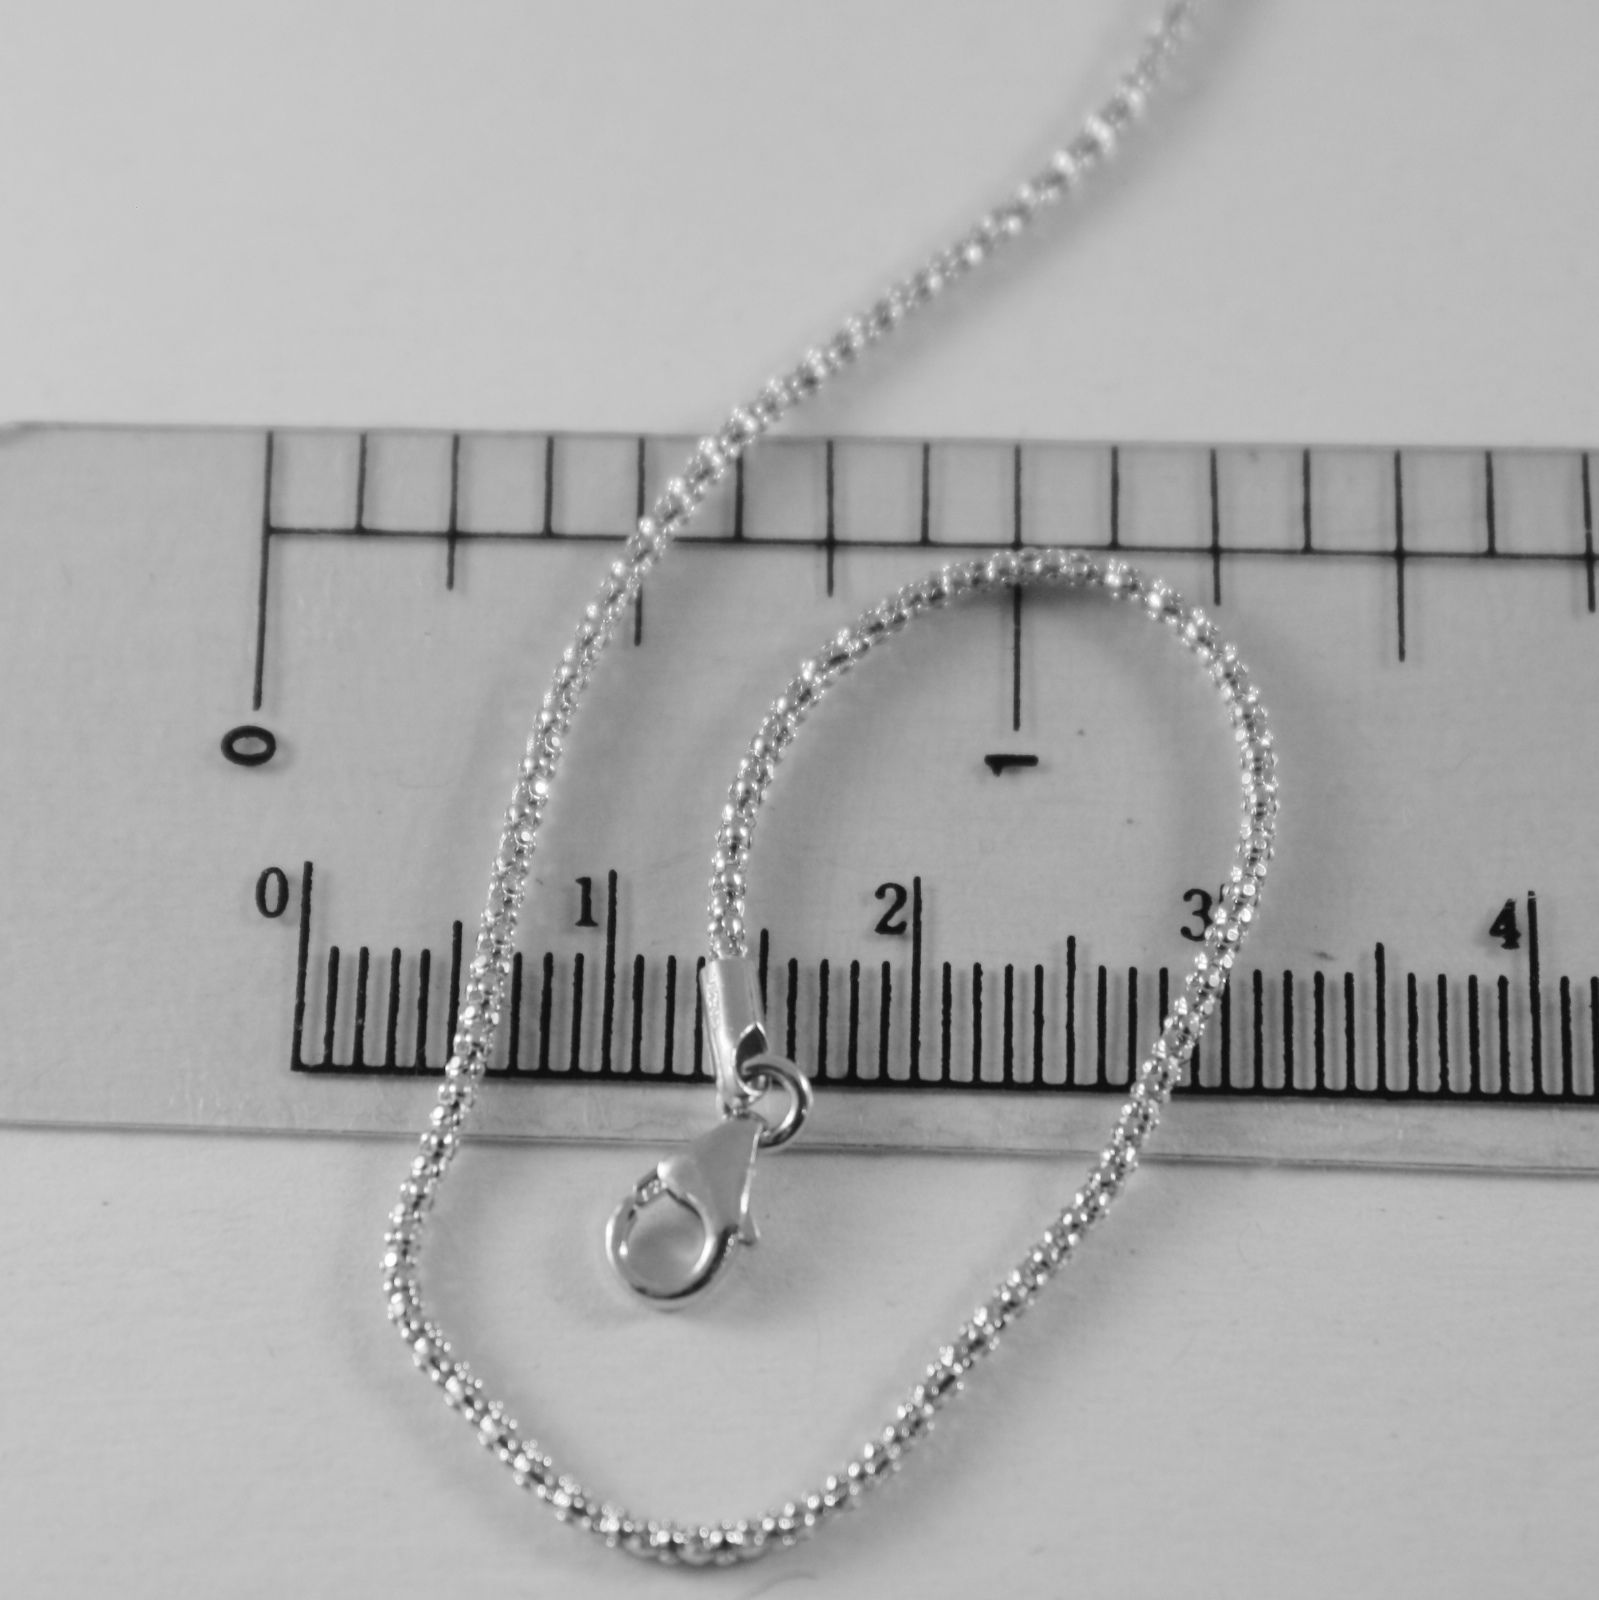 18K WHITE GOLD CHAIN MINI BASKET ROUND MESH 1 MM WIDTH 19.69 INCH MADE IN ITALY